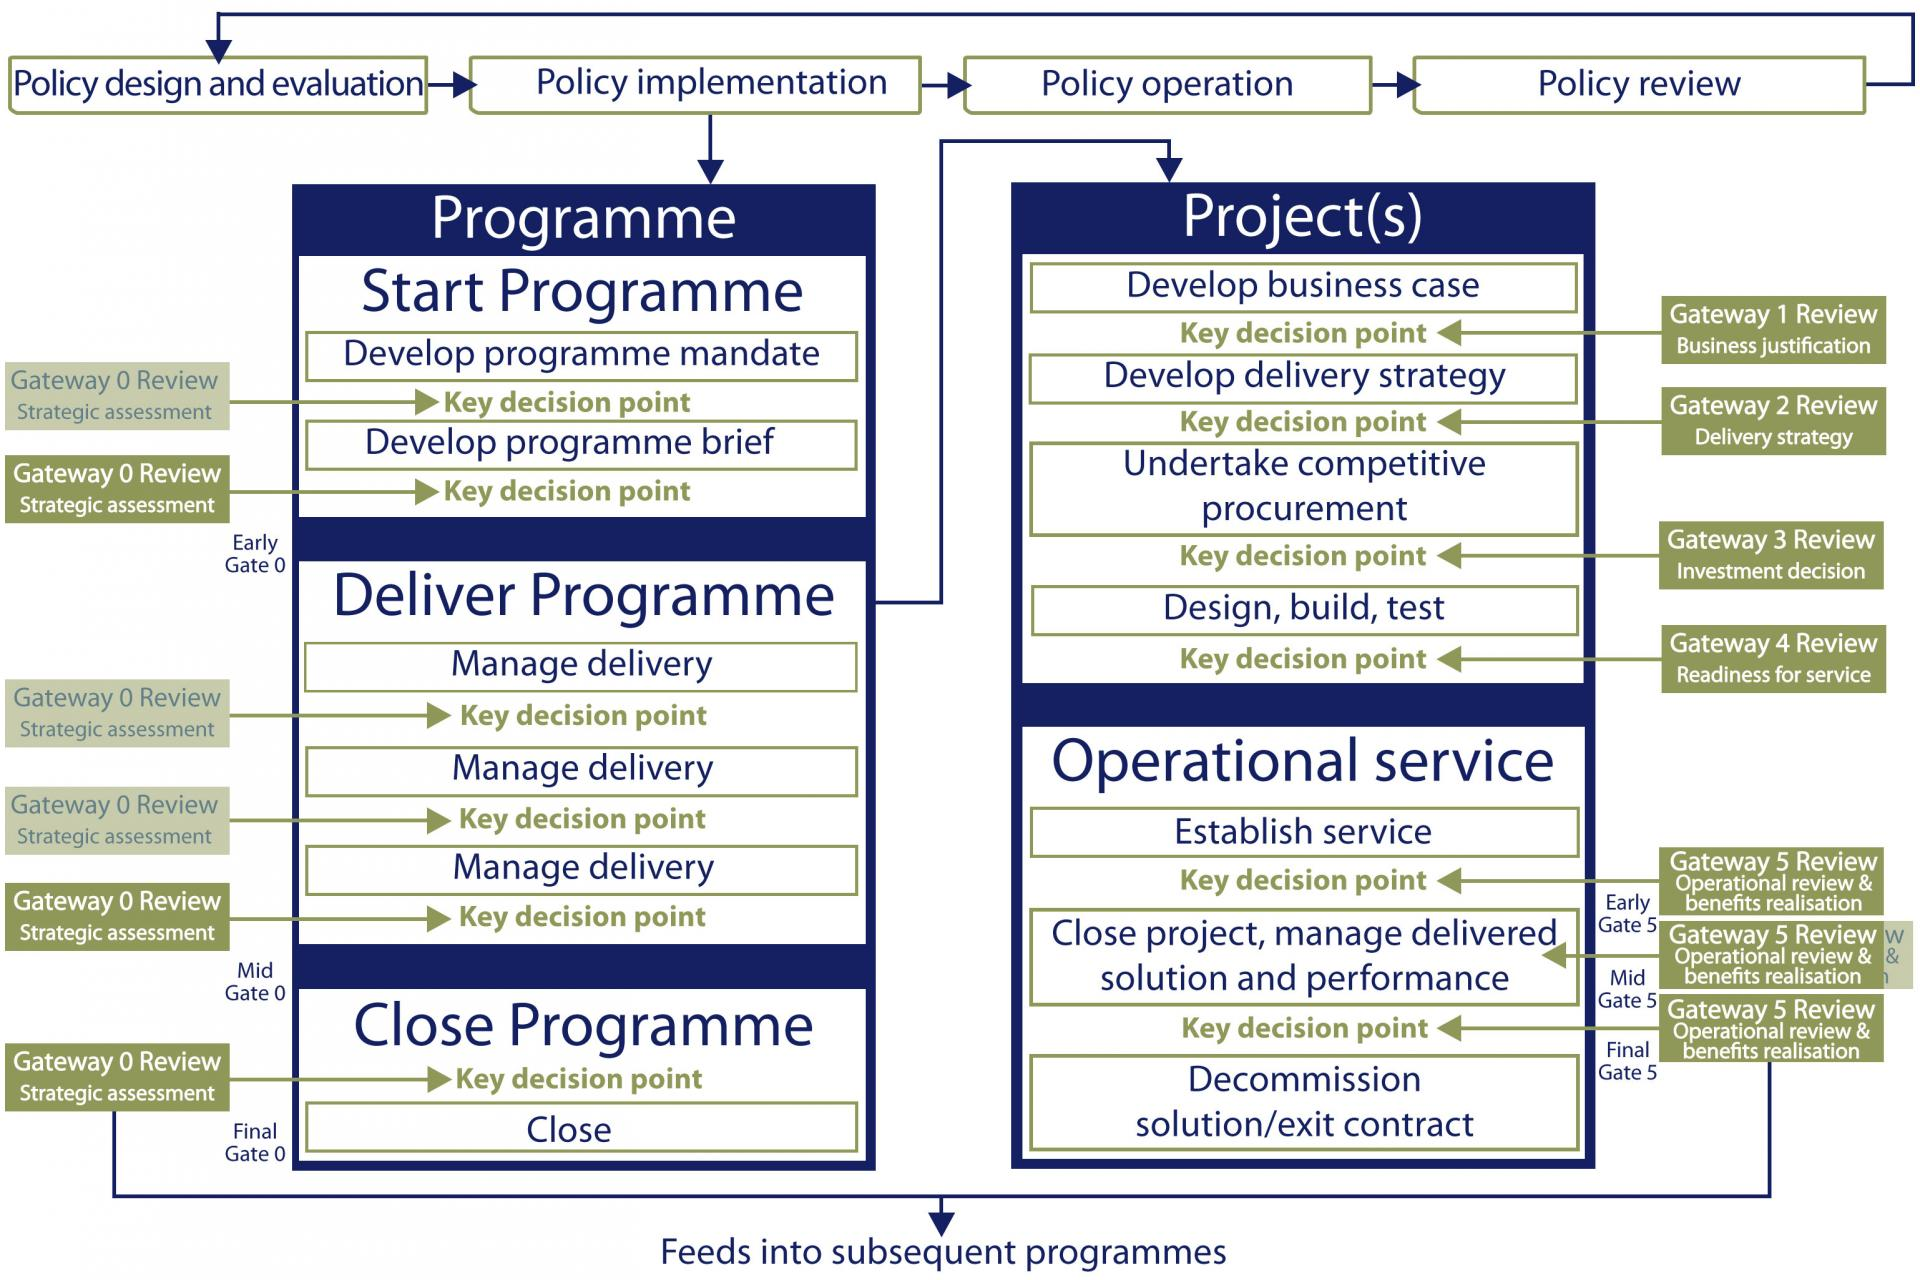 Northern Ireland Gateway Review process | Department of Finance